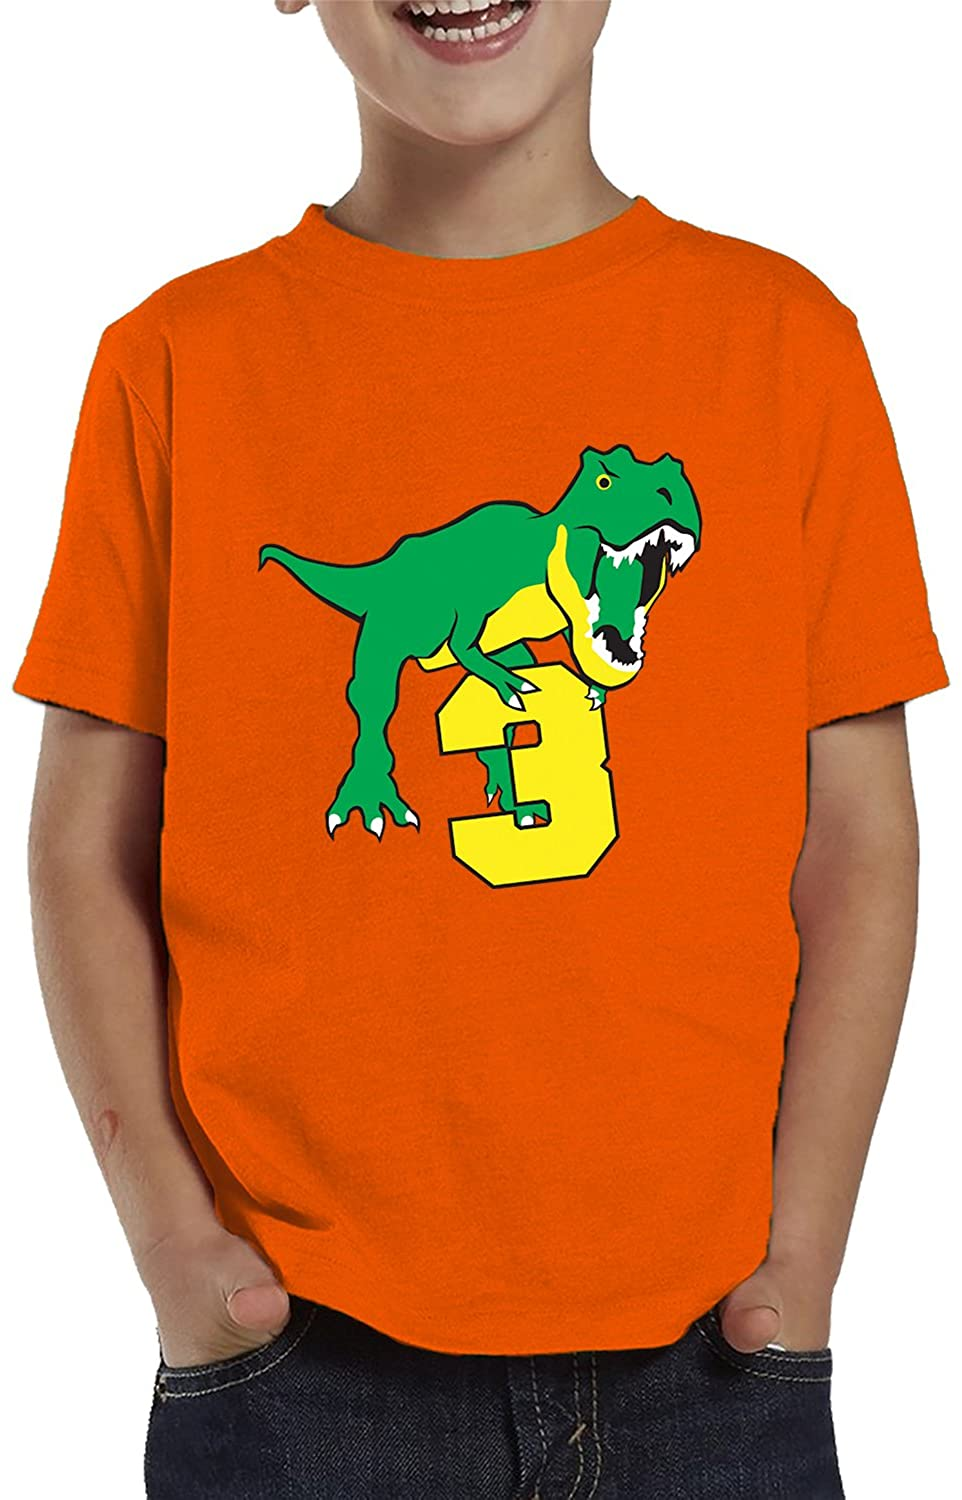 SpiritForged Apparel Dinosaur 3 Year Old Toddler T-Shirt